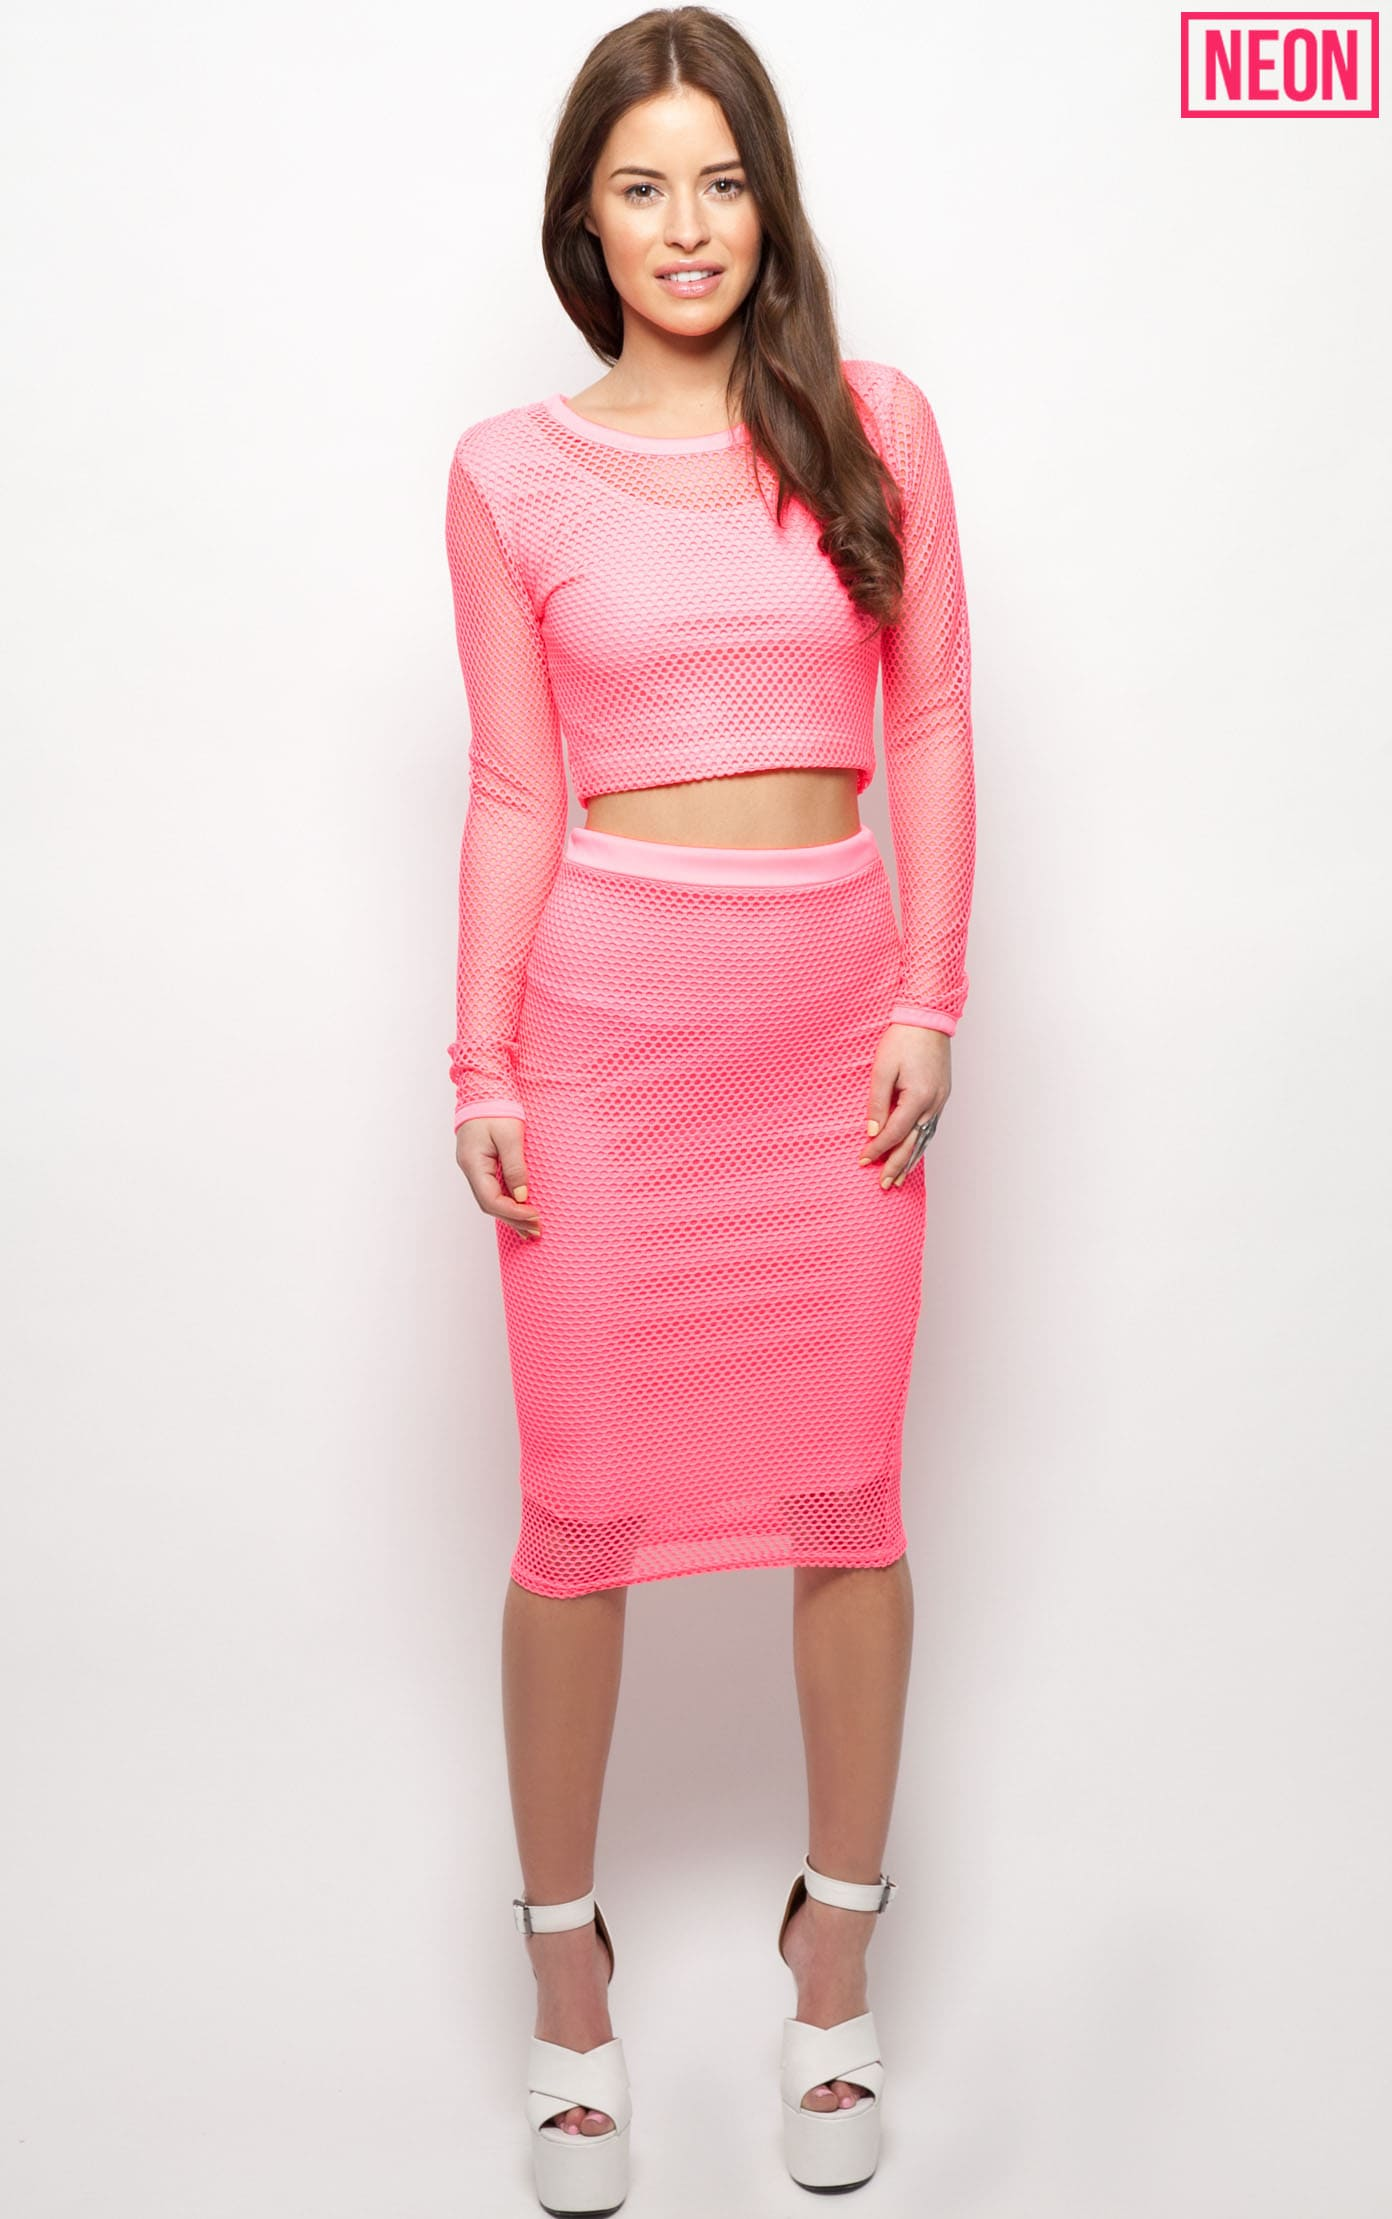 Eleanor Neon Pink Fishnet Long Sleeve Crop Top 2